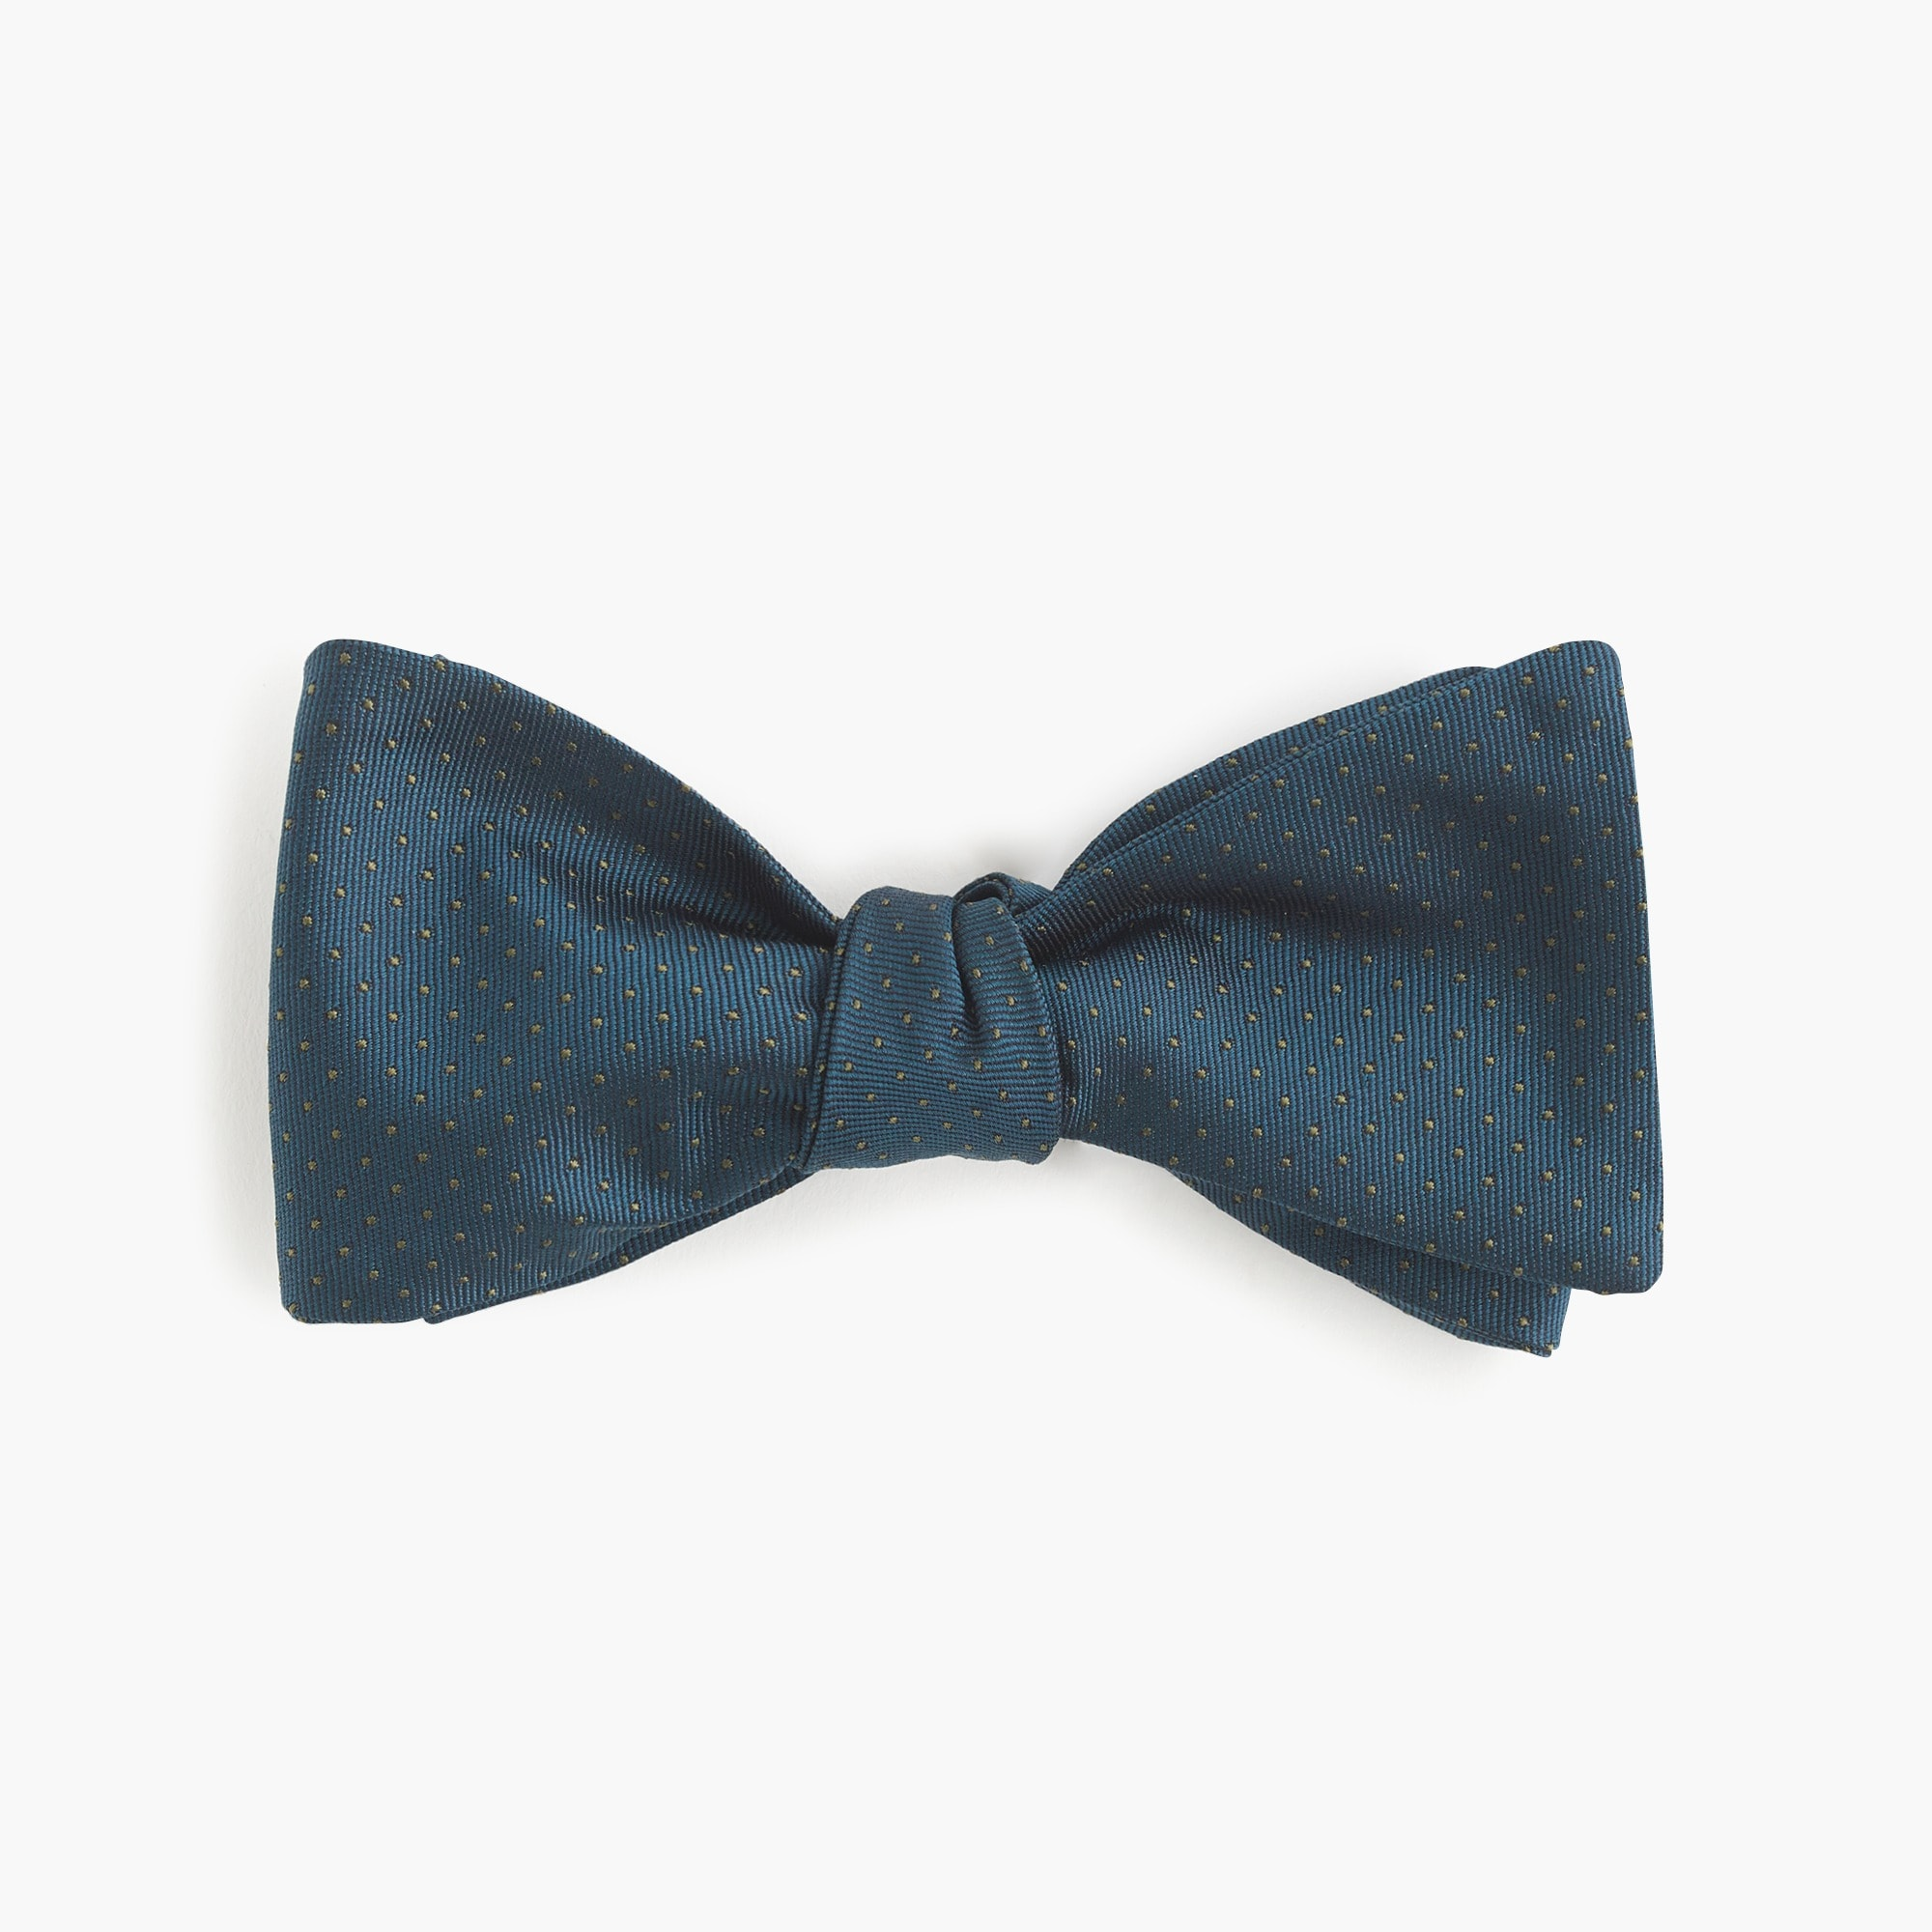 Image 1 for Cotton bow tie in dot print